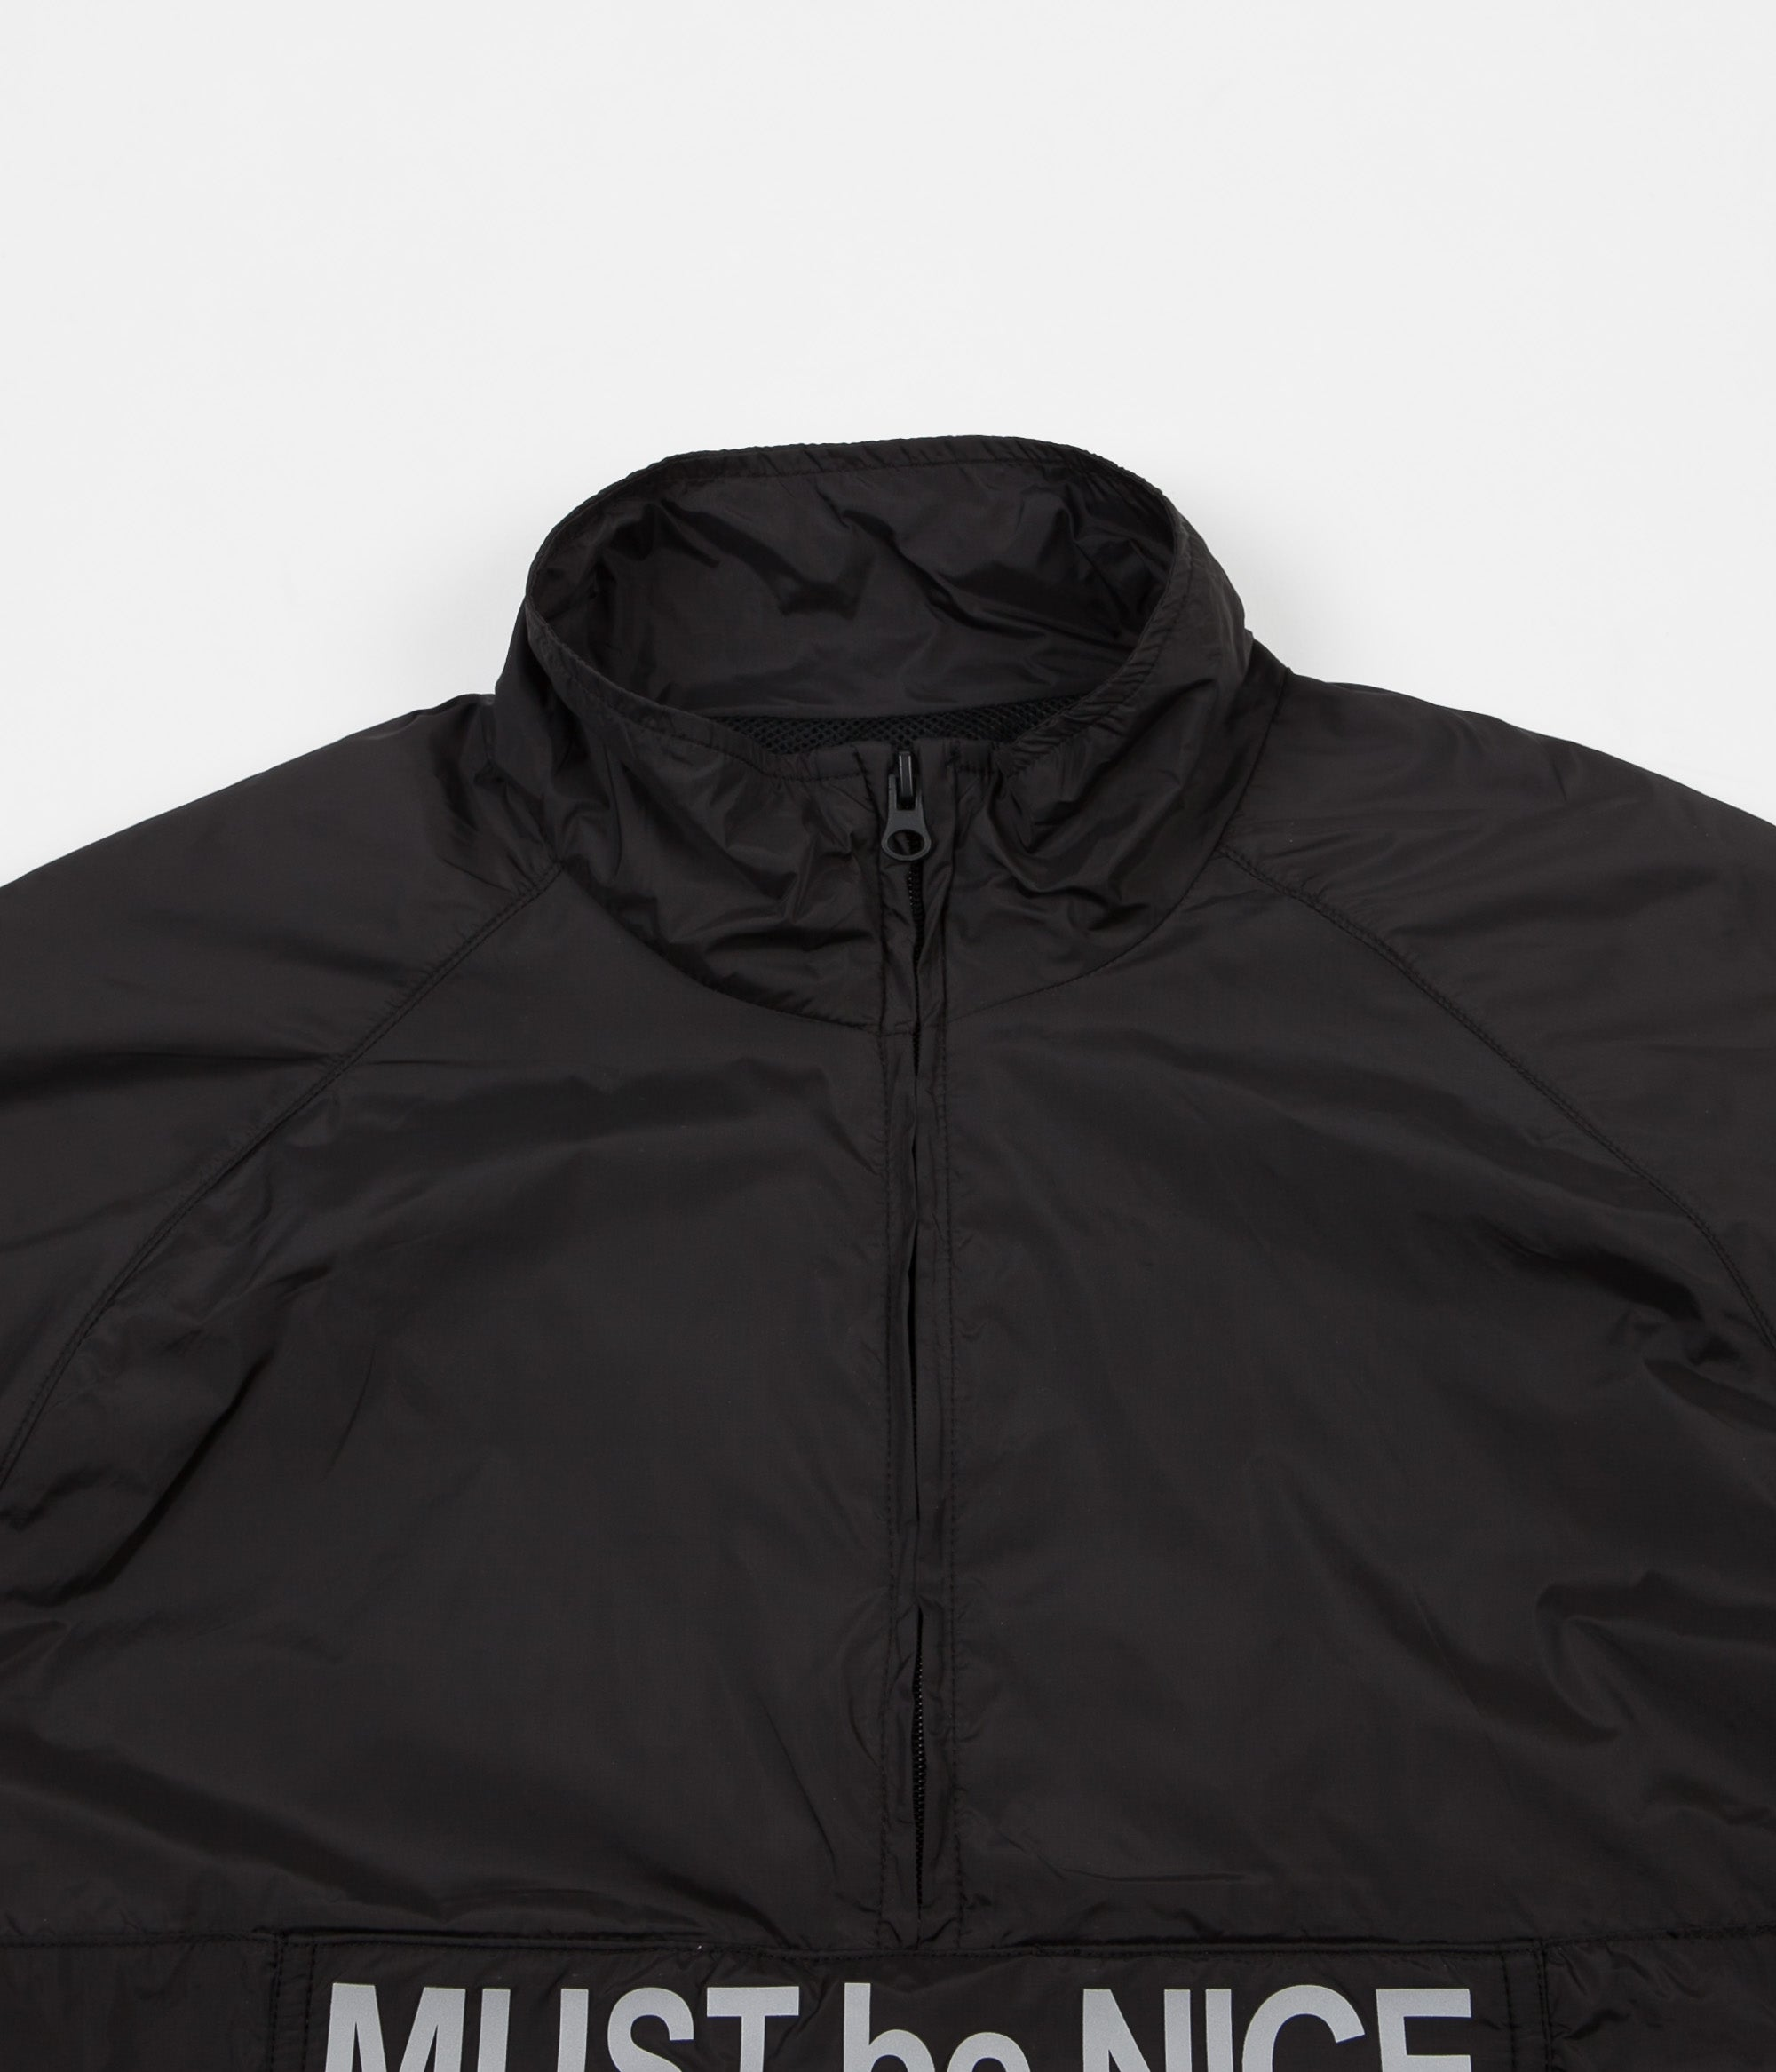 Rip N Dip Must Be Nice Half Zip Anorak Jacket - Black / 3M